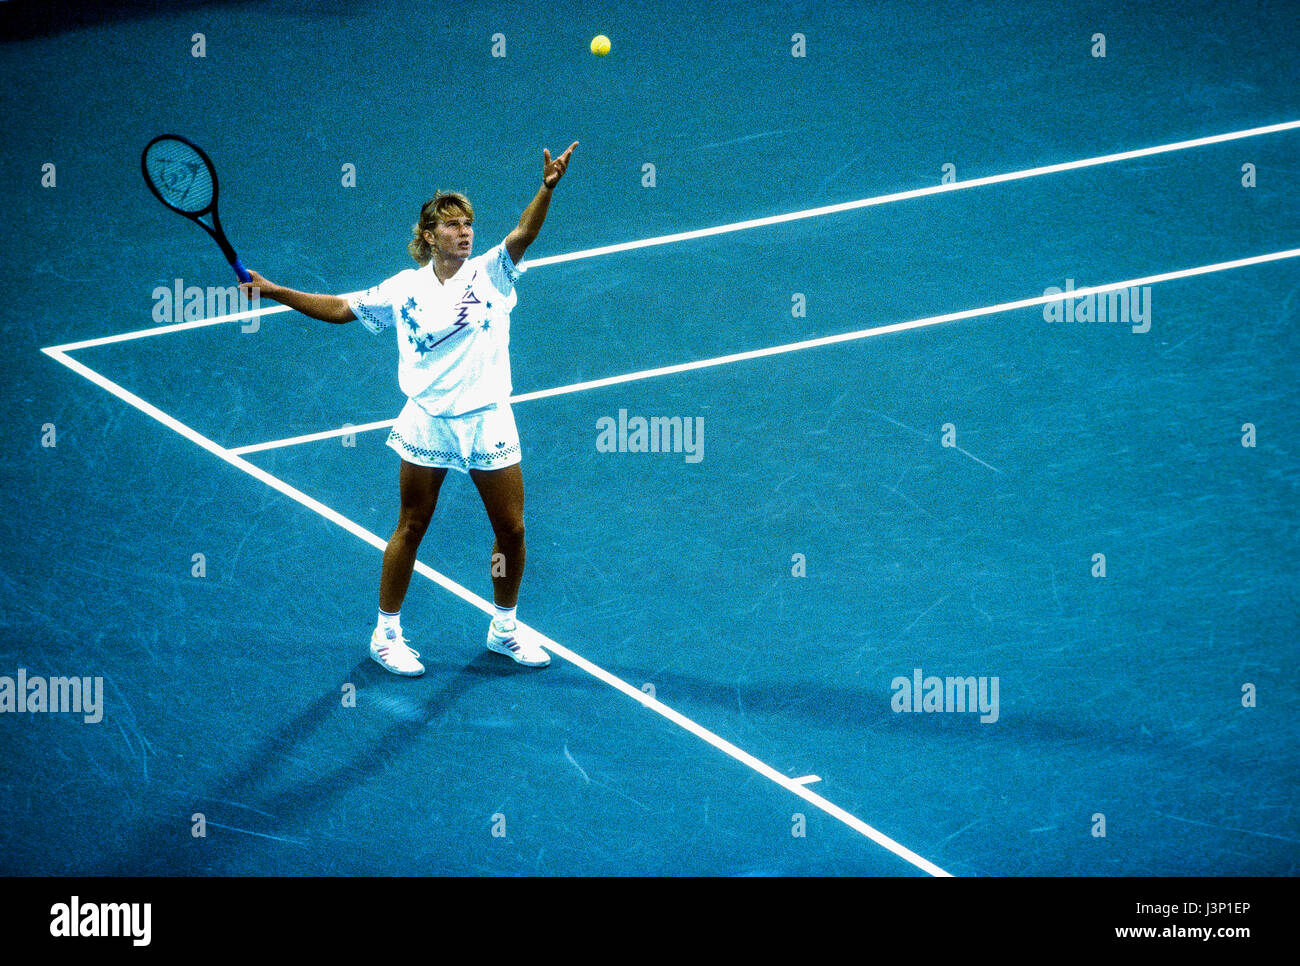 Steffi Graf (GER) competing at the 1987 US Open. - Stock Image